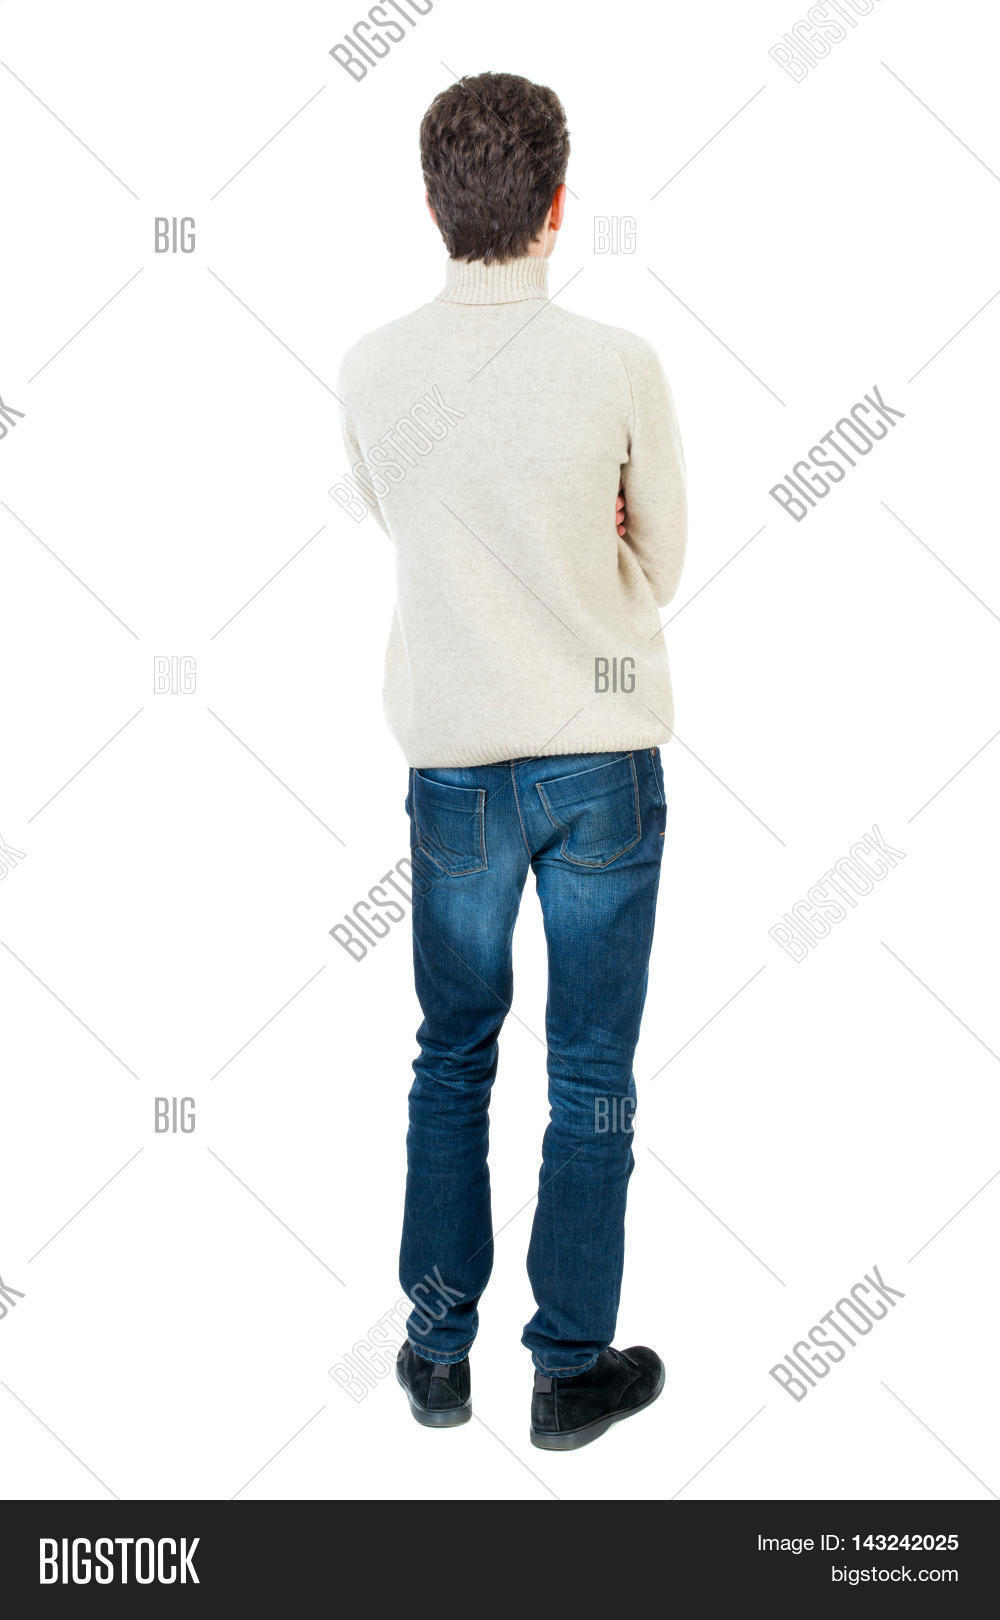 back view man image photo free trial bigstock